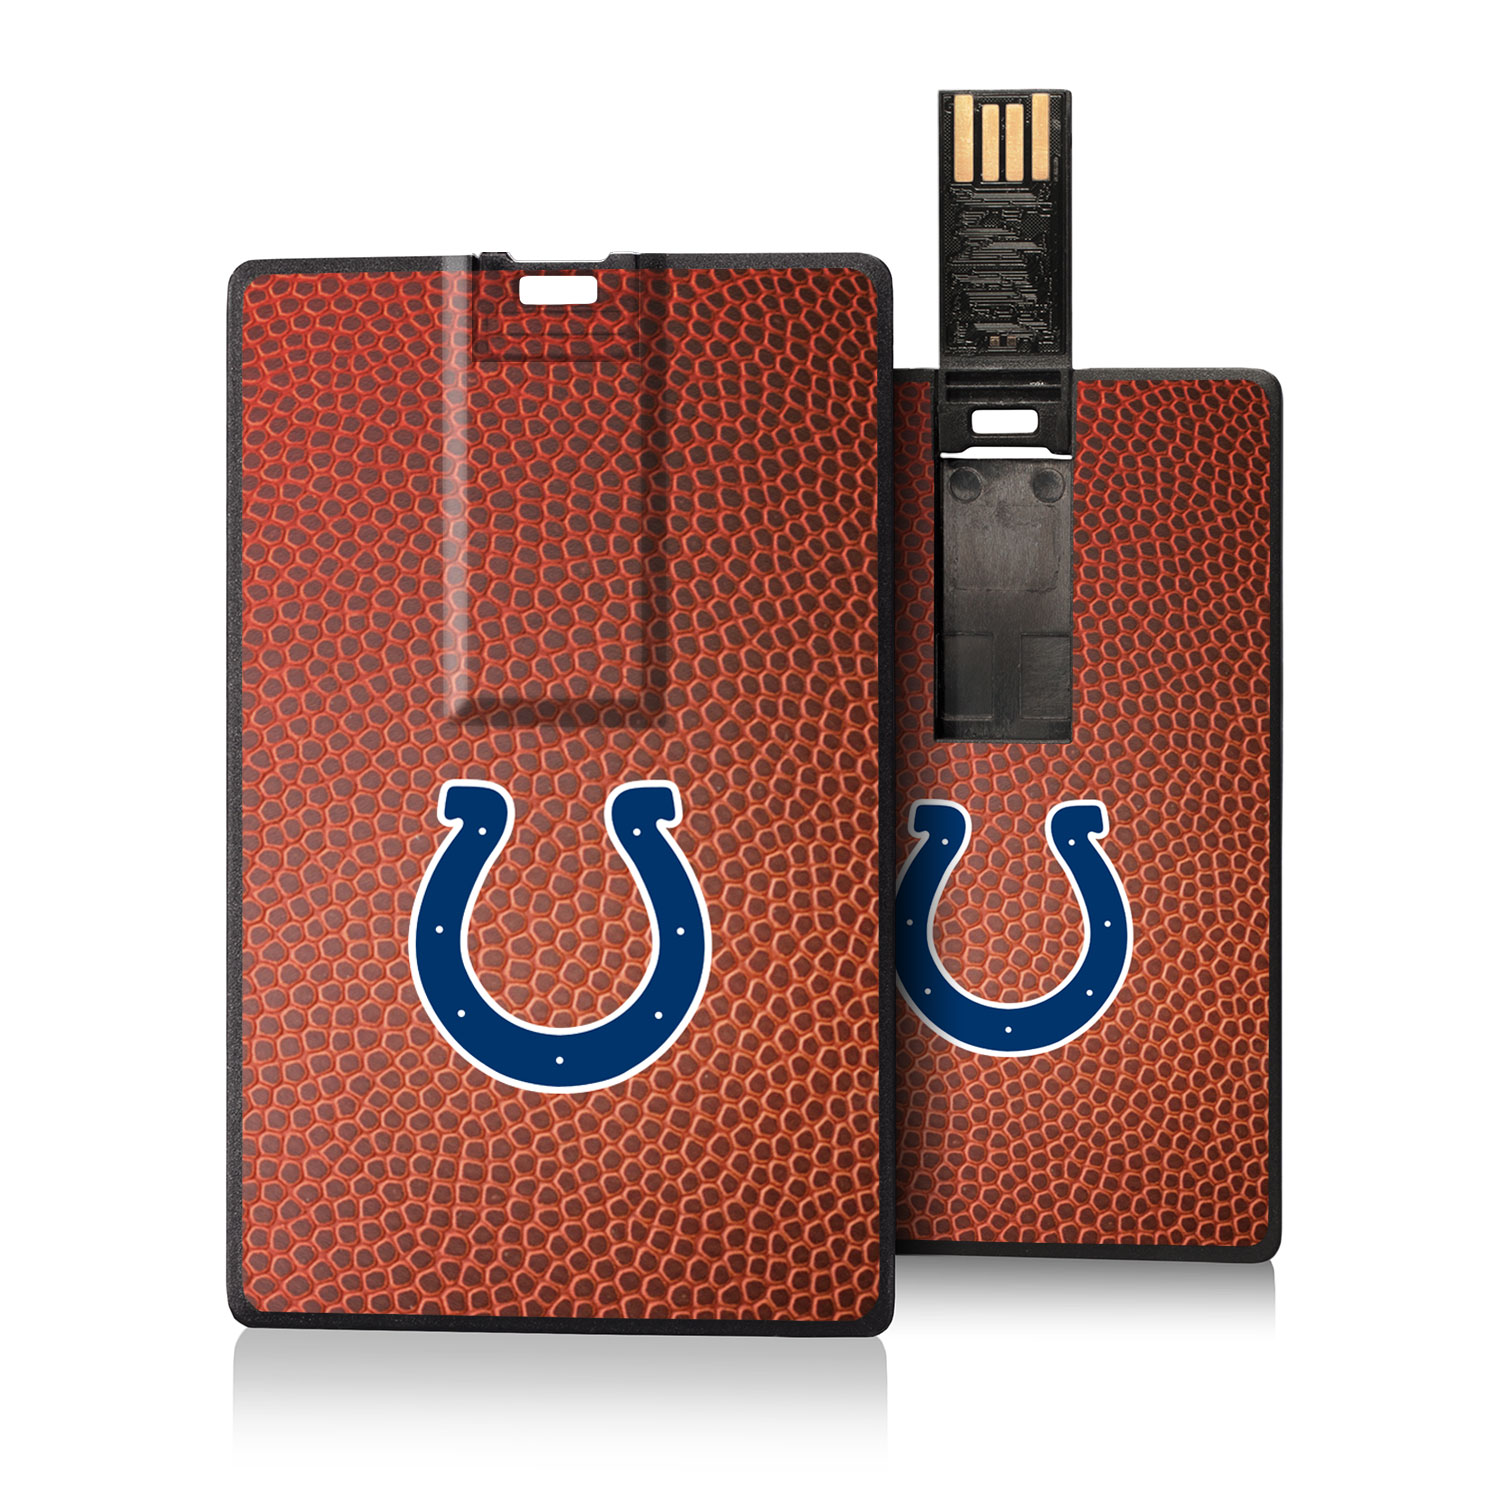 Indianapolis Colts Football Design Credit Card USB Drive